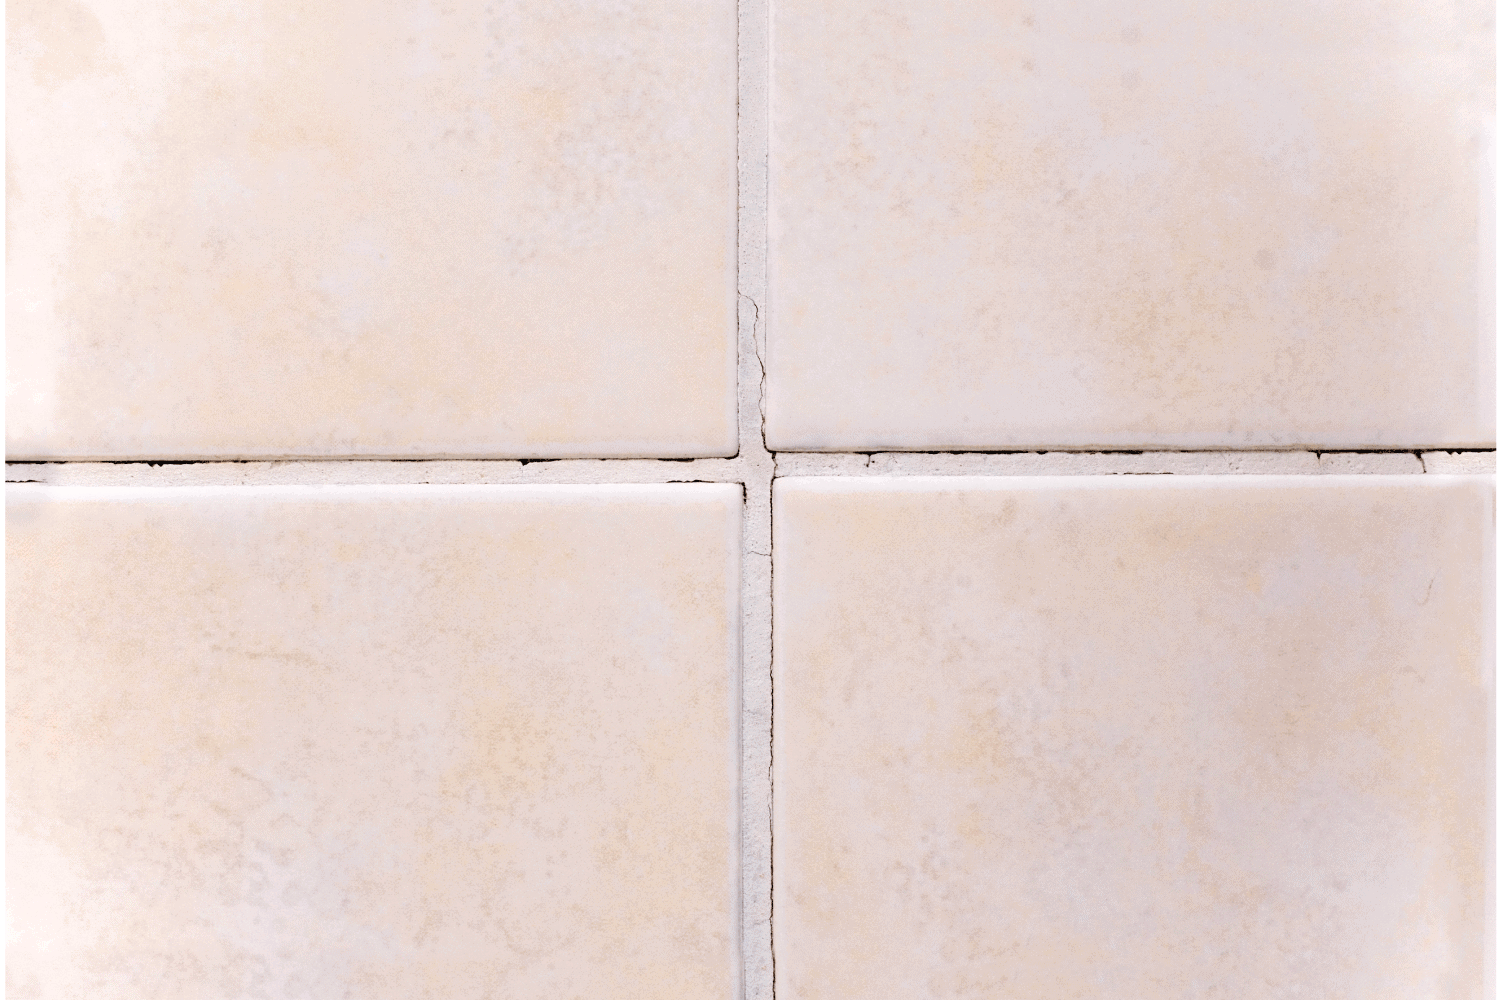 Close-up of damage on joint grout in a bathromm shower. Cracks in the joint grout allow the penetration of water into the wall which causes mold formation